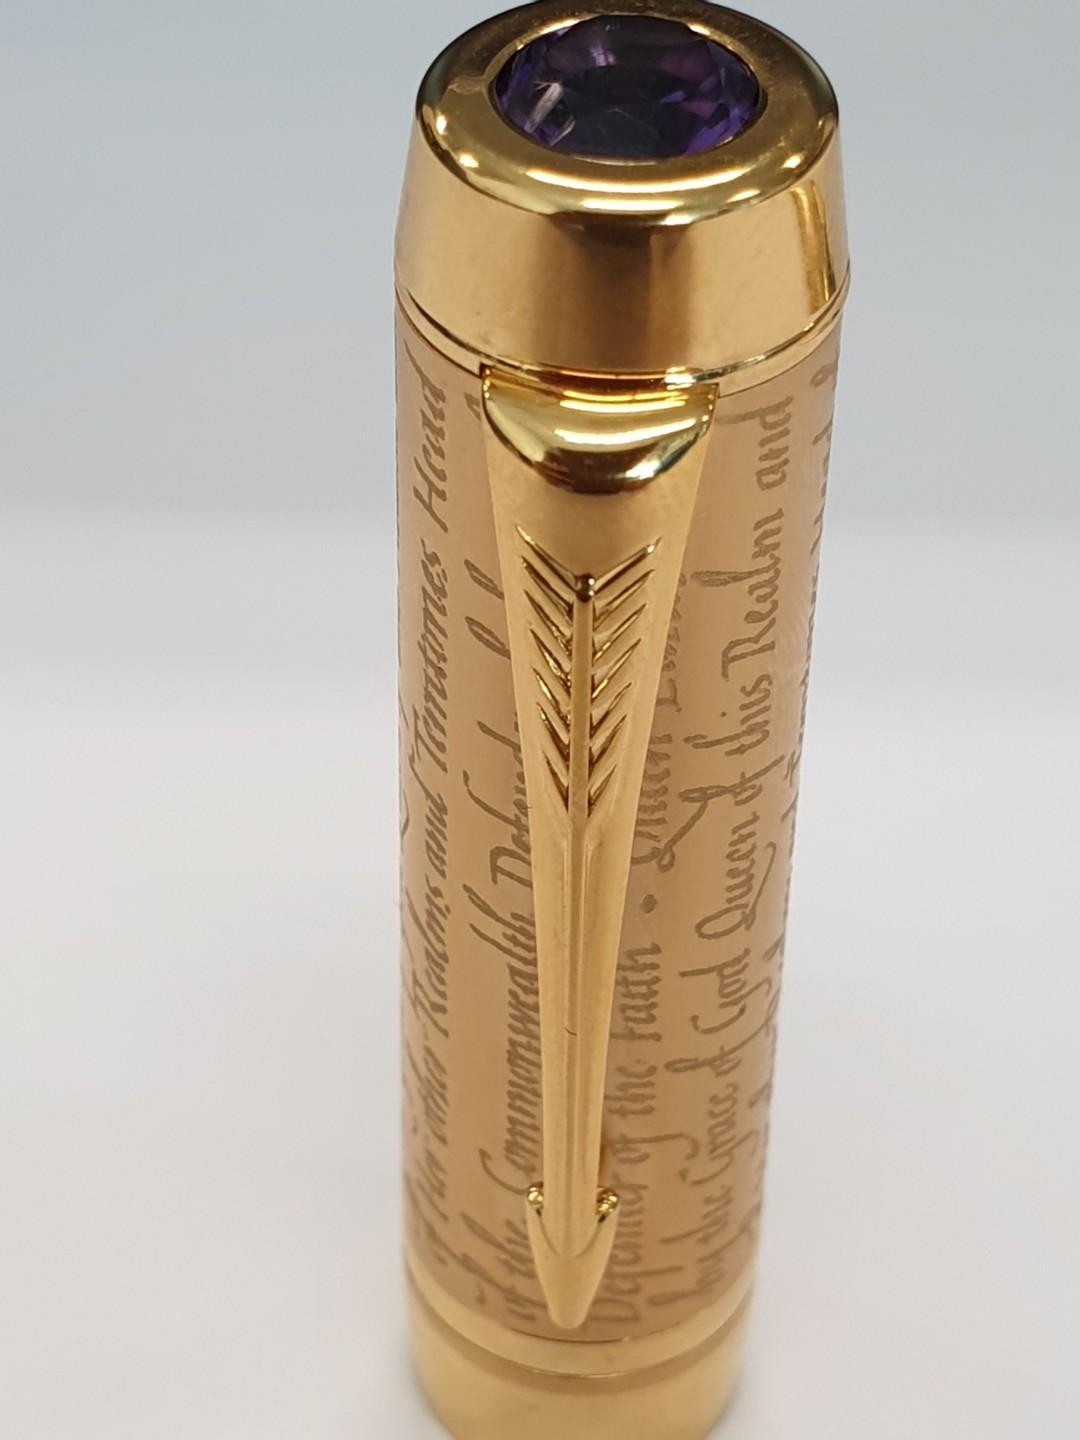 Parker Duofold Queen Elizabeth II Accession 2002 Limited Edition Fountain Pen